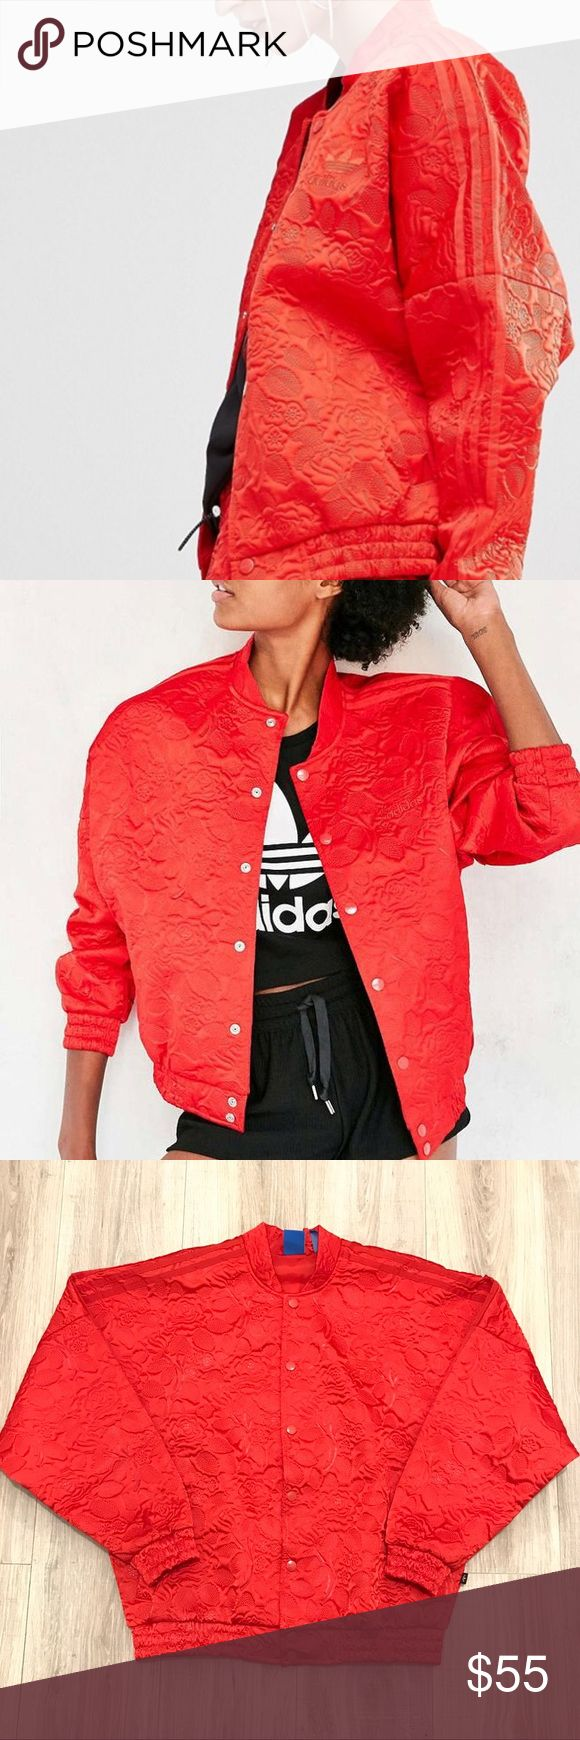 RED ADIDAS BONDED LACE OVERSIZED BOMBER JACKET Beautiful red color.  Women's size medium. Fits oversized. Looks great with red floral adidas leggings.  Worn but no flaws. adidas Jackets & Coats